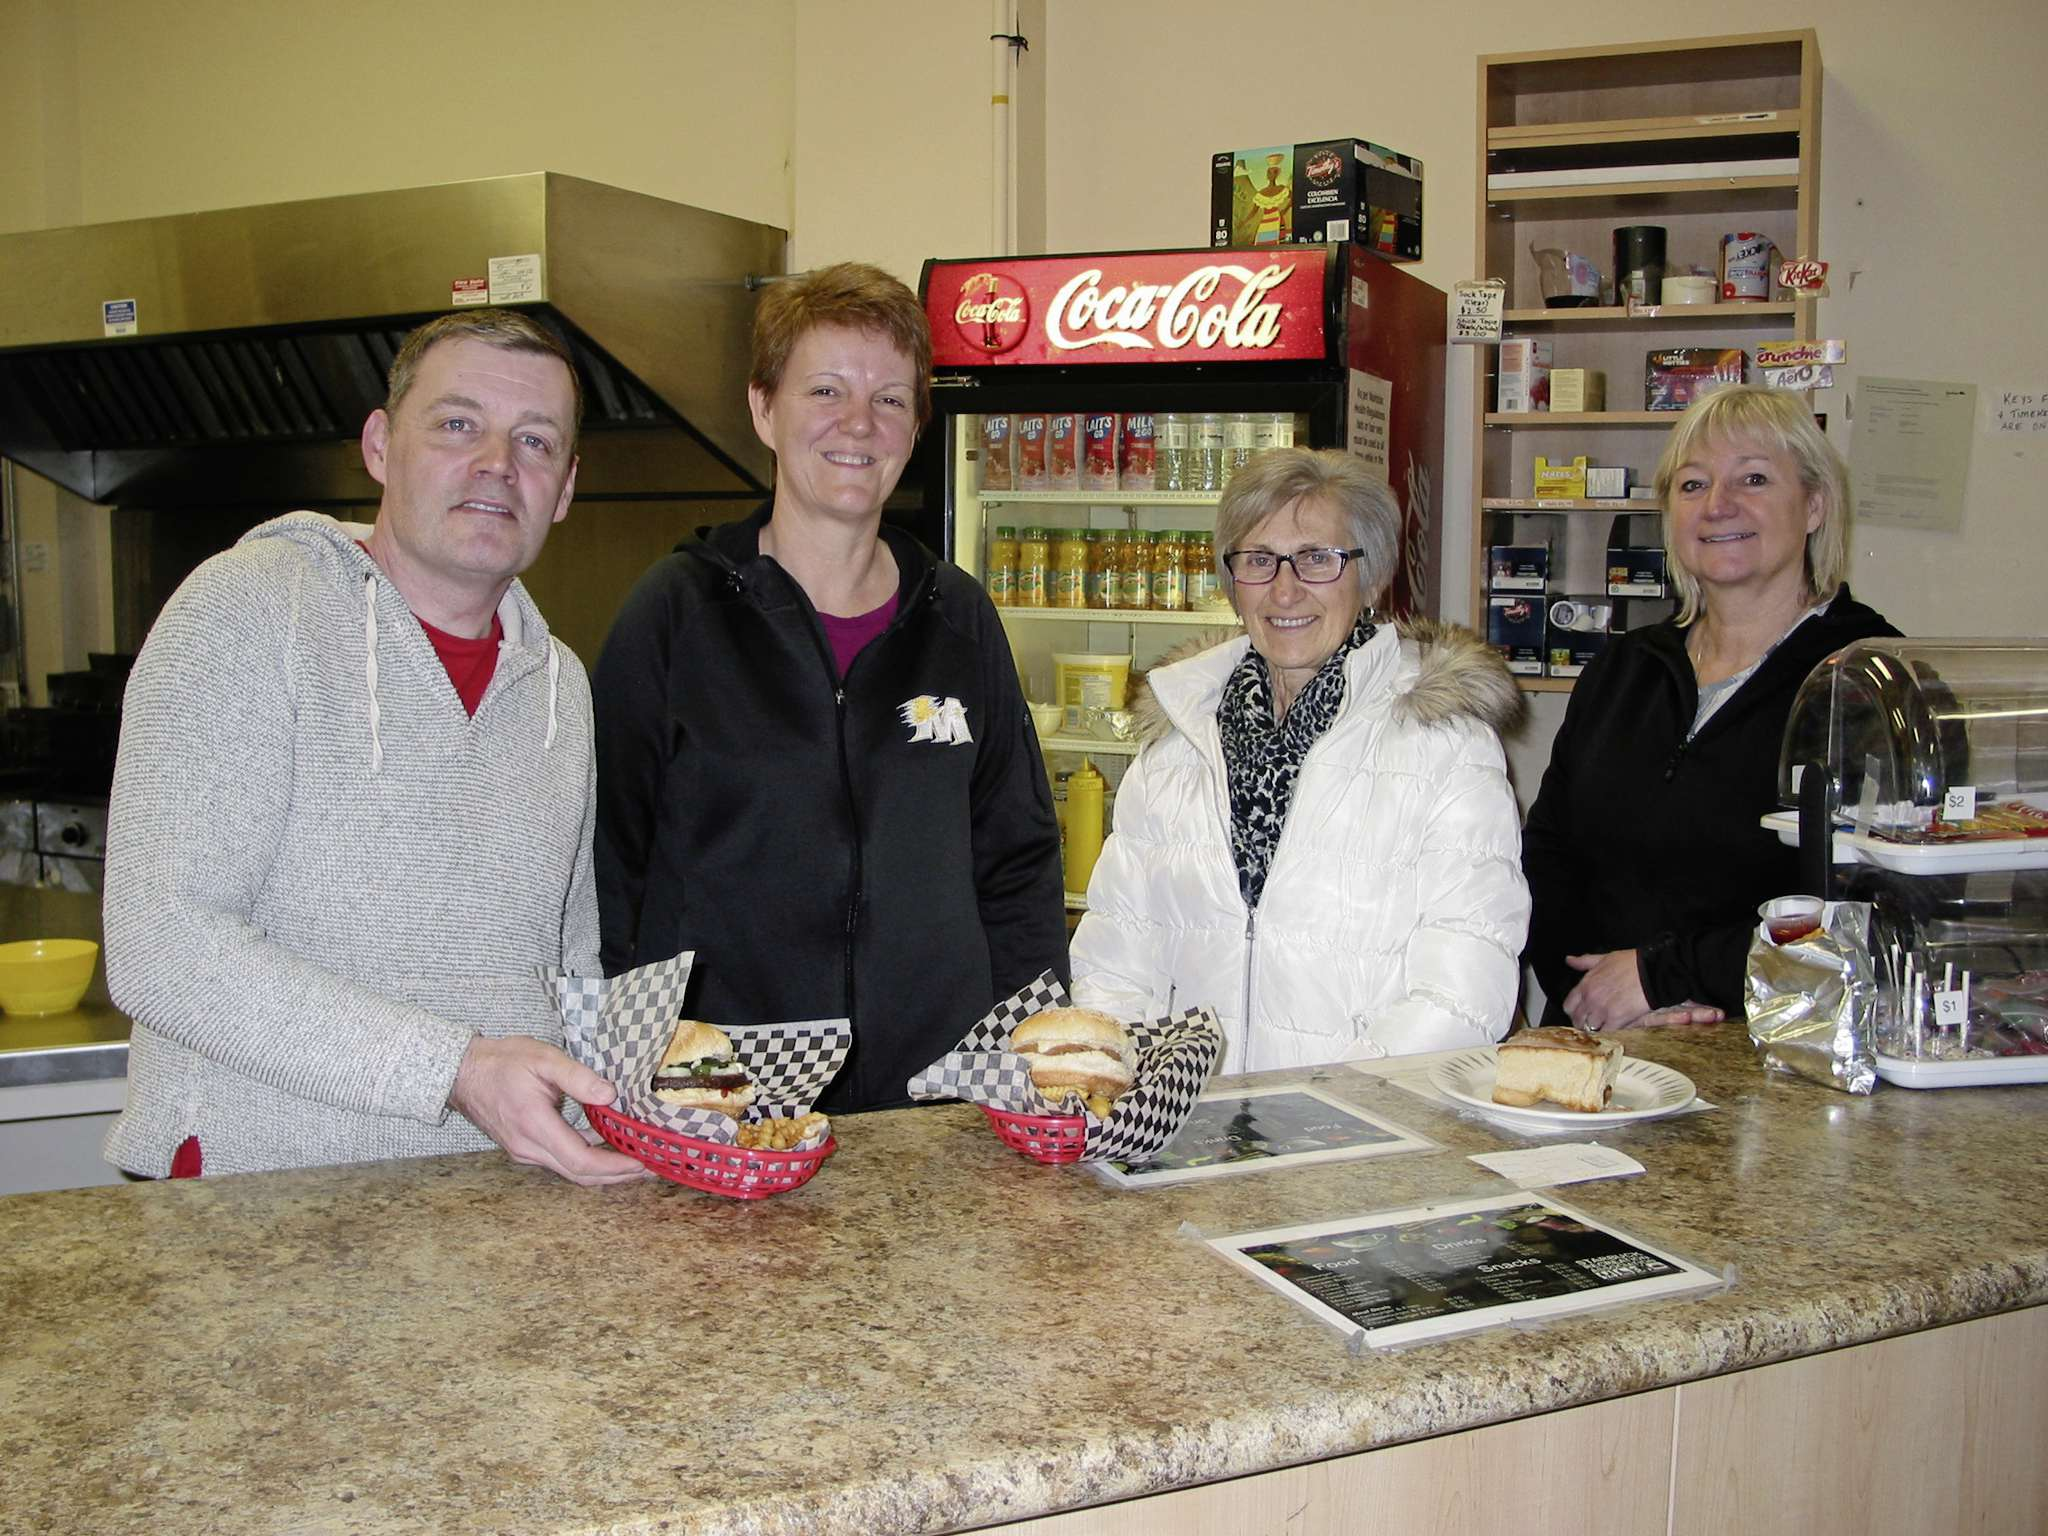 Starbuck Recreation Association volunteers (from left) Lee Kiely, Vona Guiler, Denise Vier and Mindy Hamill are shown behind the counter at the Starbuck Sports Centre's canteen which is open to the public from September to March.